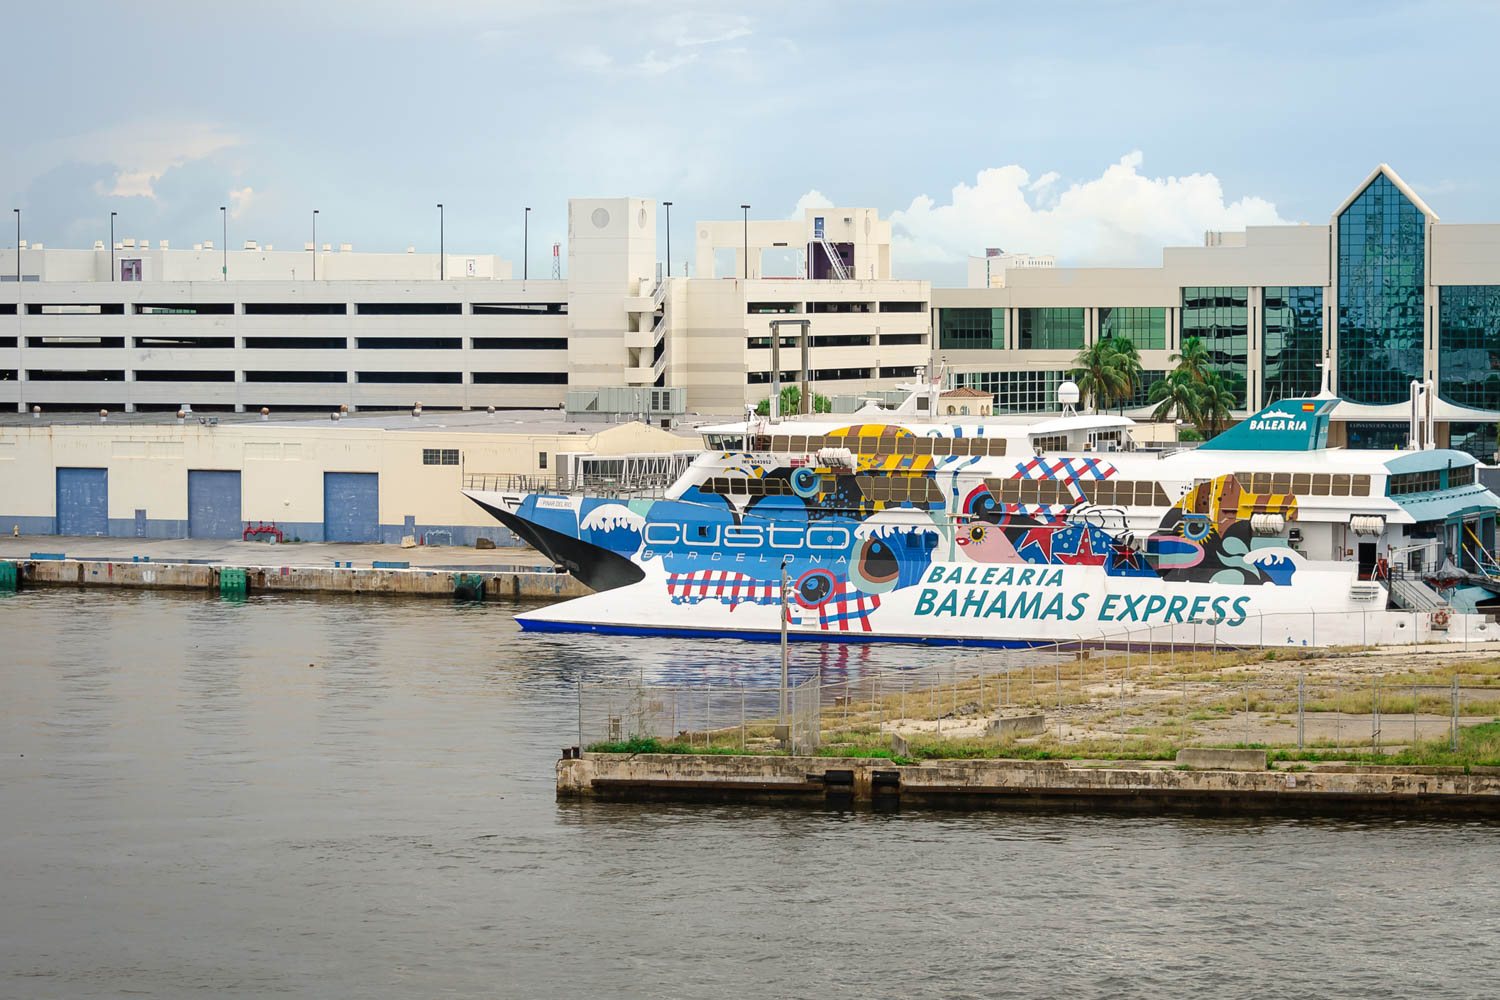 A day trip to Bahamas from Miami has become a popular island escape for many vacationers. The ferry Miami Bahamas takes 6 hours round trip. Take the Miami to Bahamas ferry with the whole family.